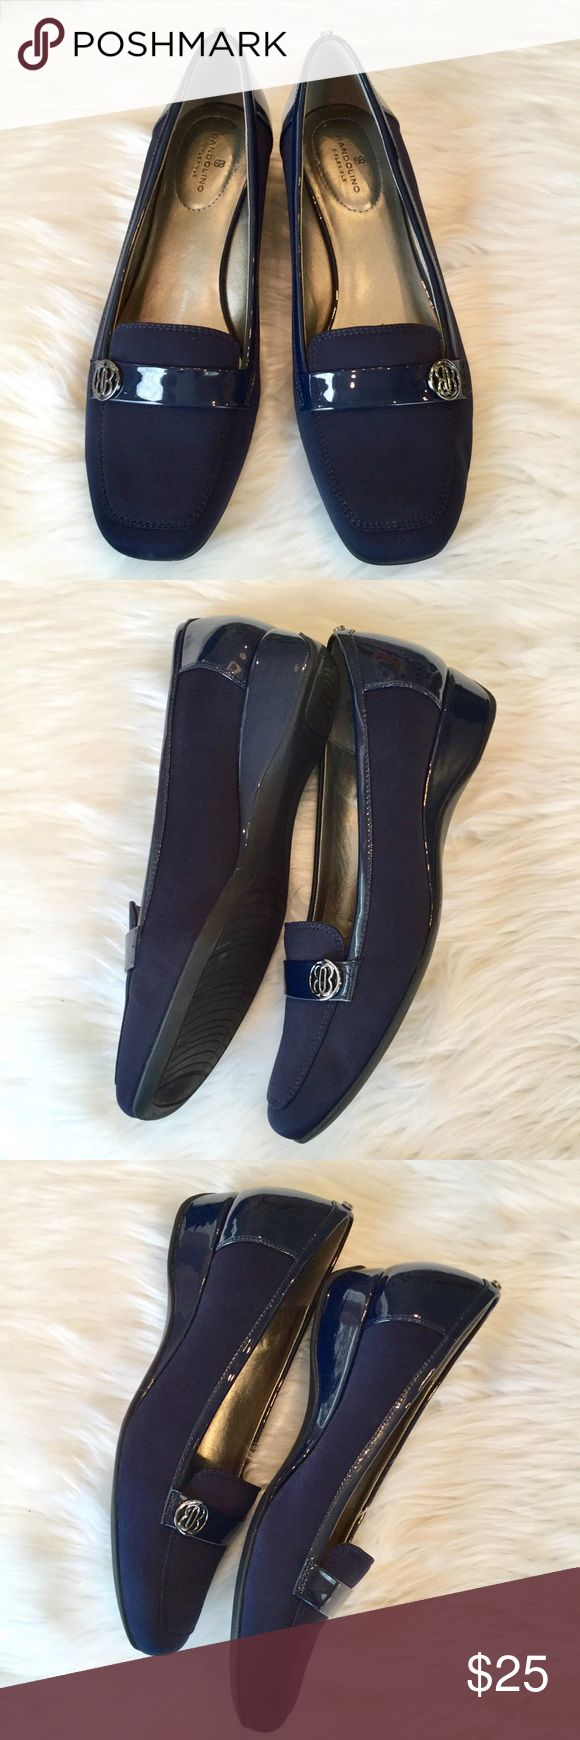 """Bandolino Navy Wedge Shoes, 9 ½, Like New Bandolino B-Flexible navy loafers. Padded insole for comfortable wear.   🔹1"""" wedge  🔹 Patent microfiber textile upper 🔹Excellent, like new condition  (Sandy) Bandolino Shoes Flats & Loafers"""